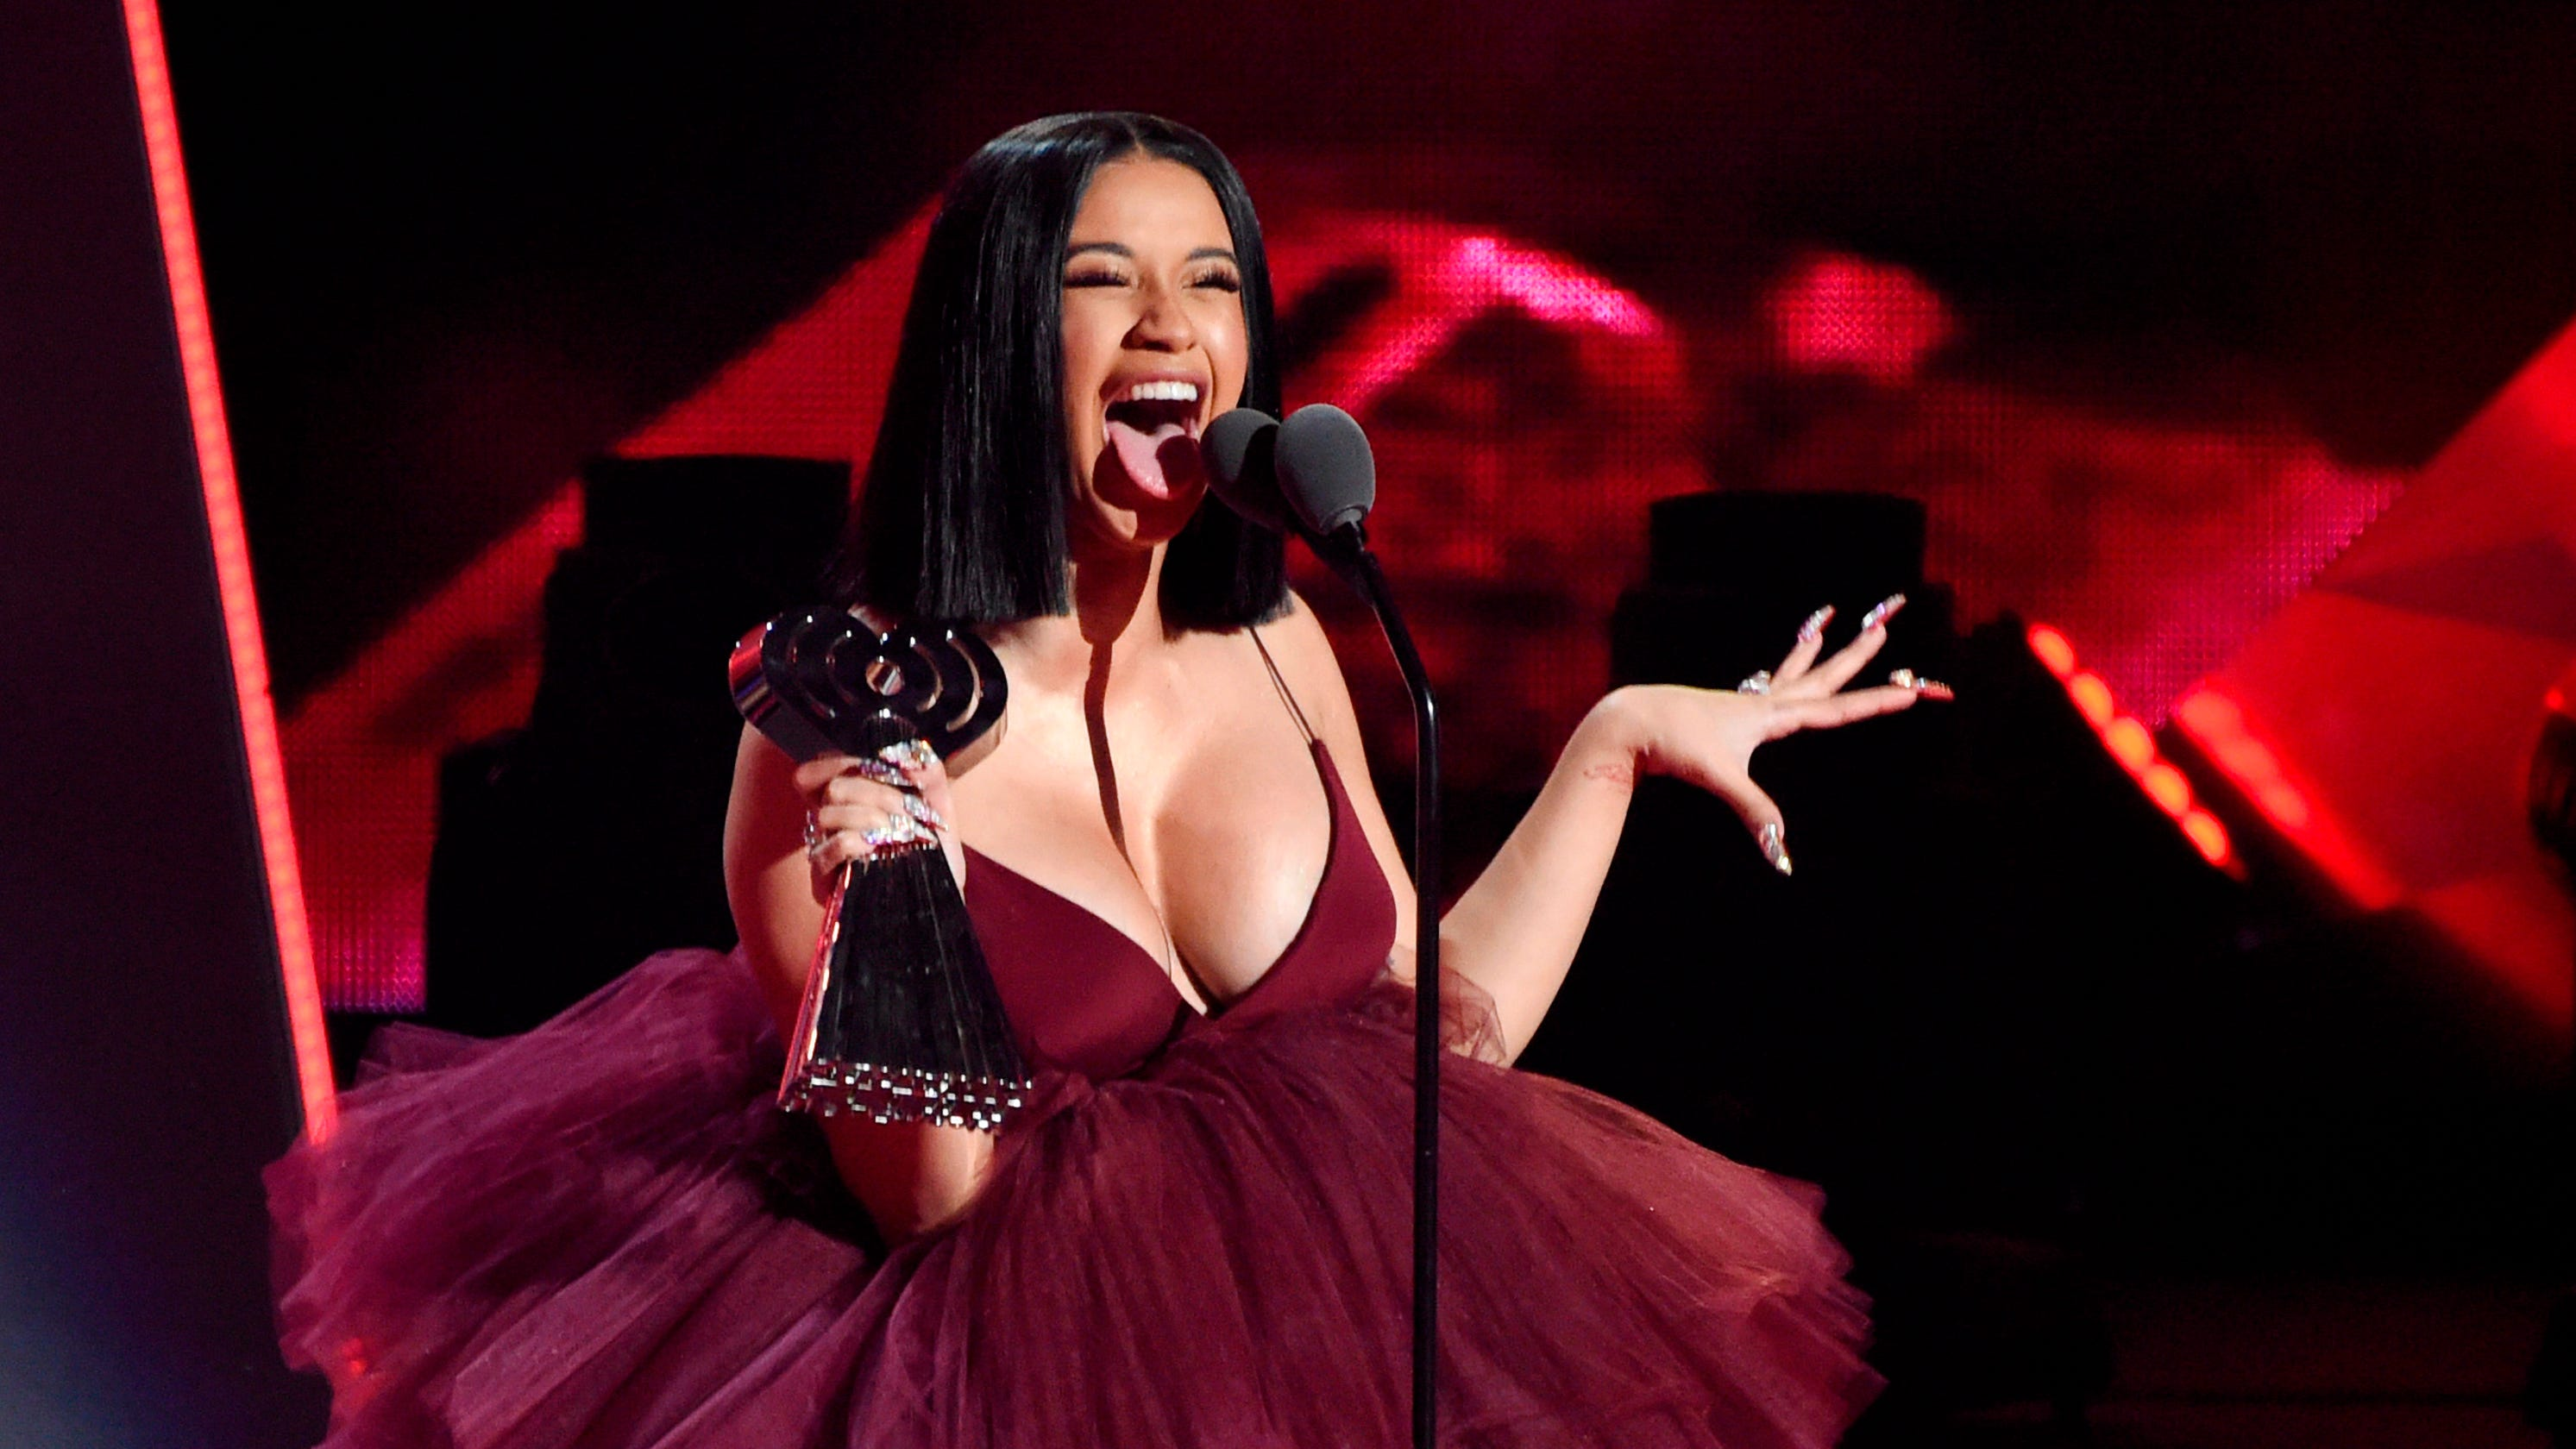 Cardi B Actually Heartbroken Despite Putting On Brave: IHeartRadio Awards Noms: Cardi B Leads With 13 Nods, Drake